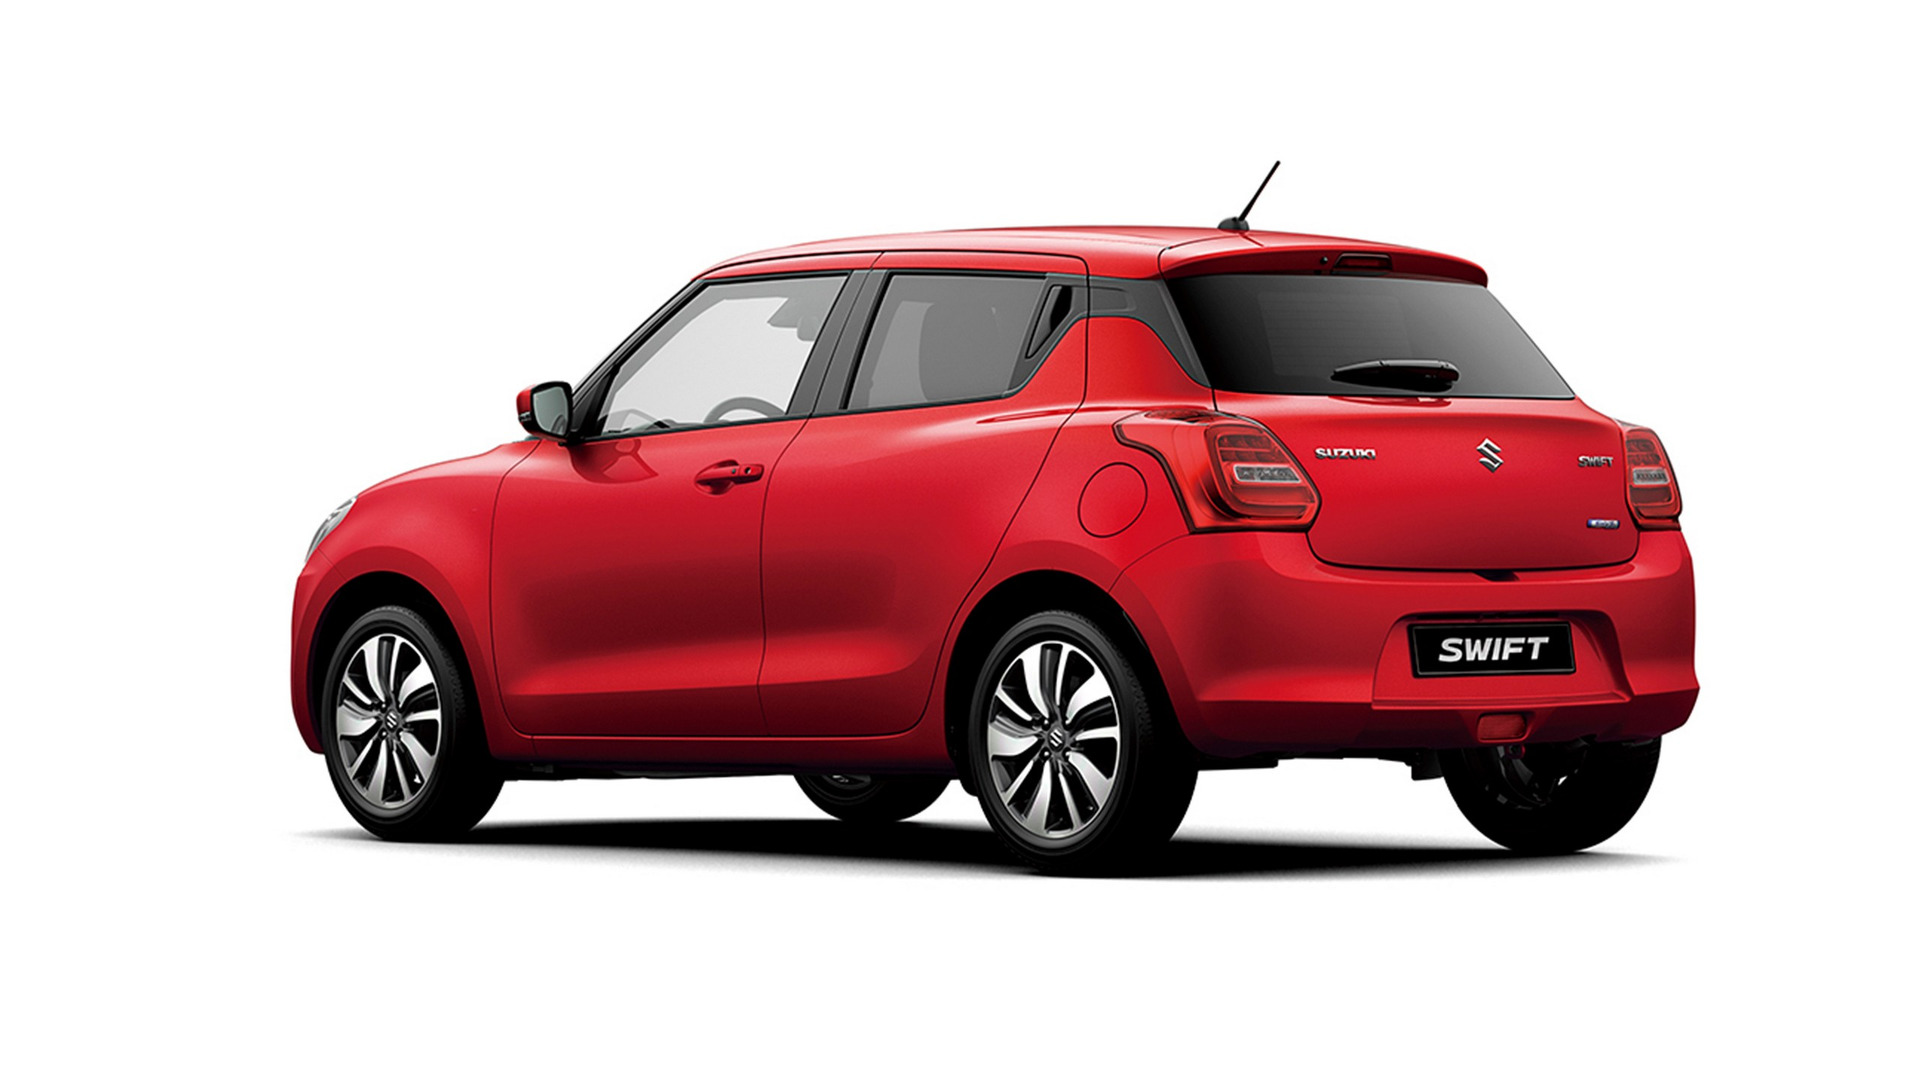 New Suzuki Swift Is Available As An Awd Hybrid Hatch 2000 Transmission Sd Sensor